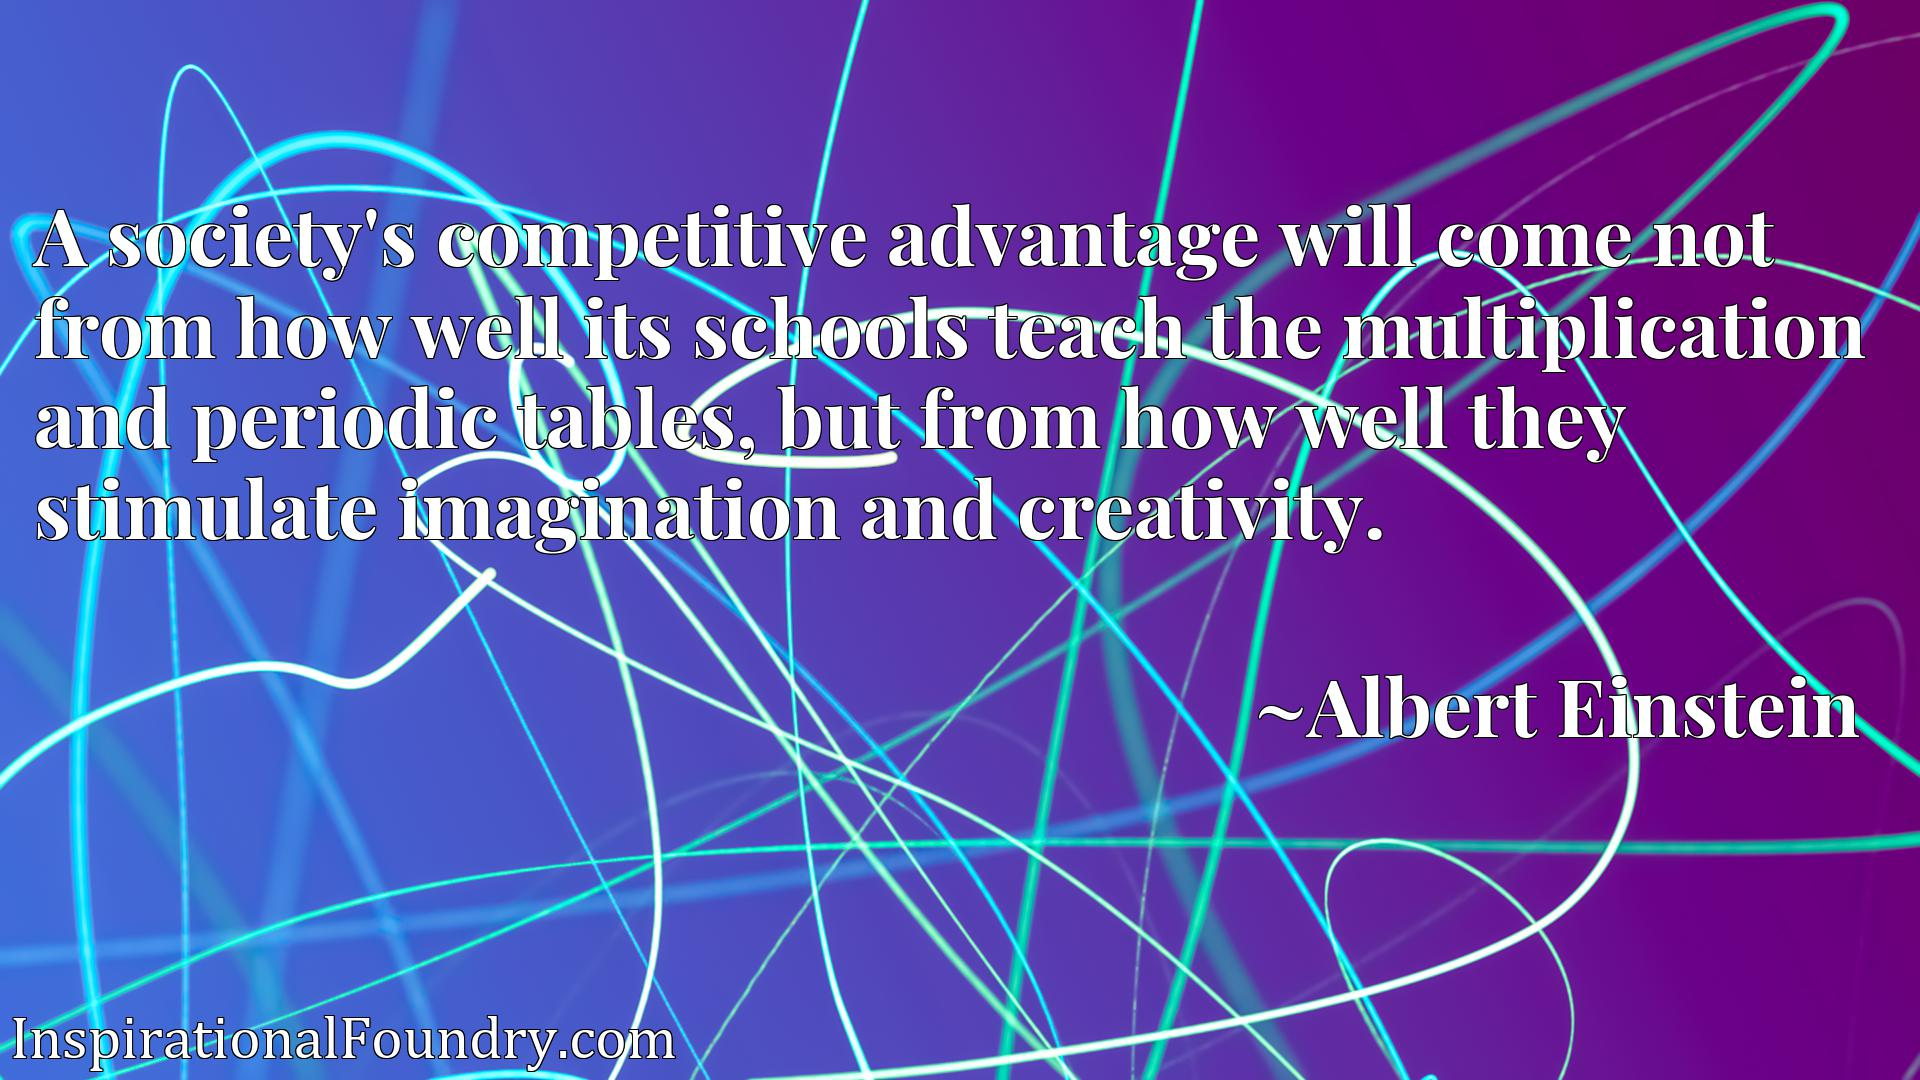 A society's competitive advantage will come not from how well its schools teach the multiplication and periodic tables, but from how well they stimulate imagination and creativity.